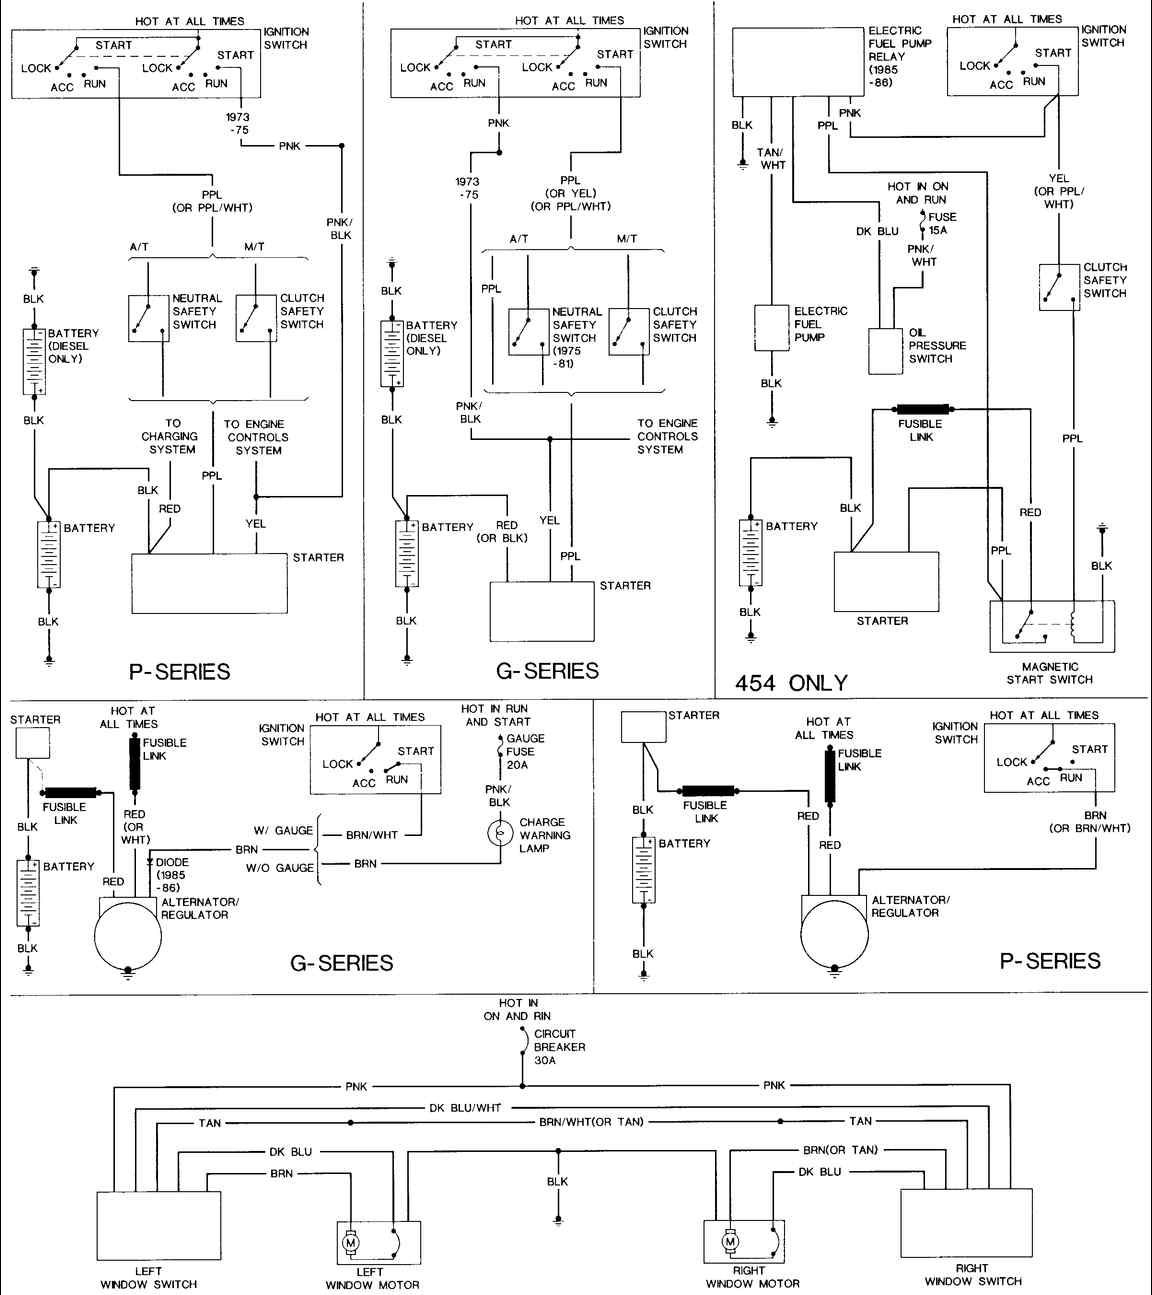 85 chevy truck wiring diagram | 85 chevy: van  the steering column and  started it by pushing  rod